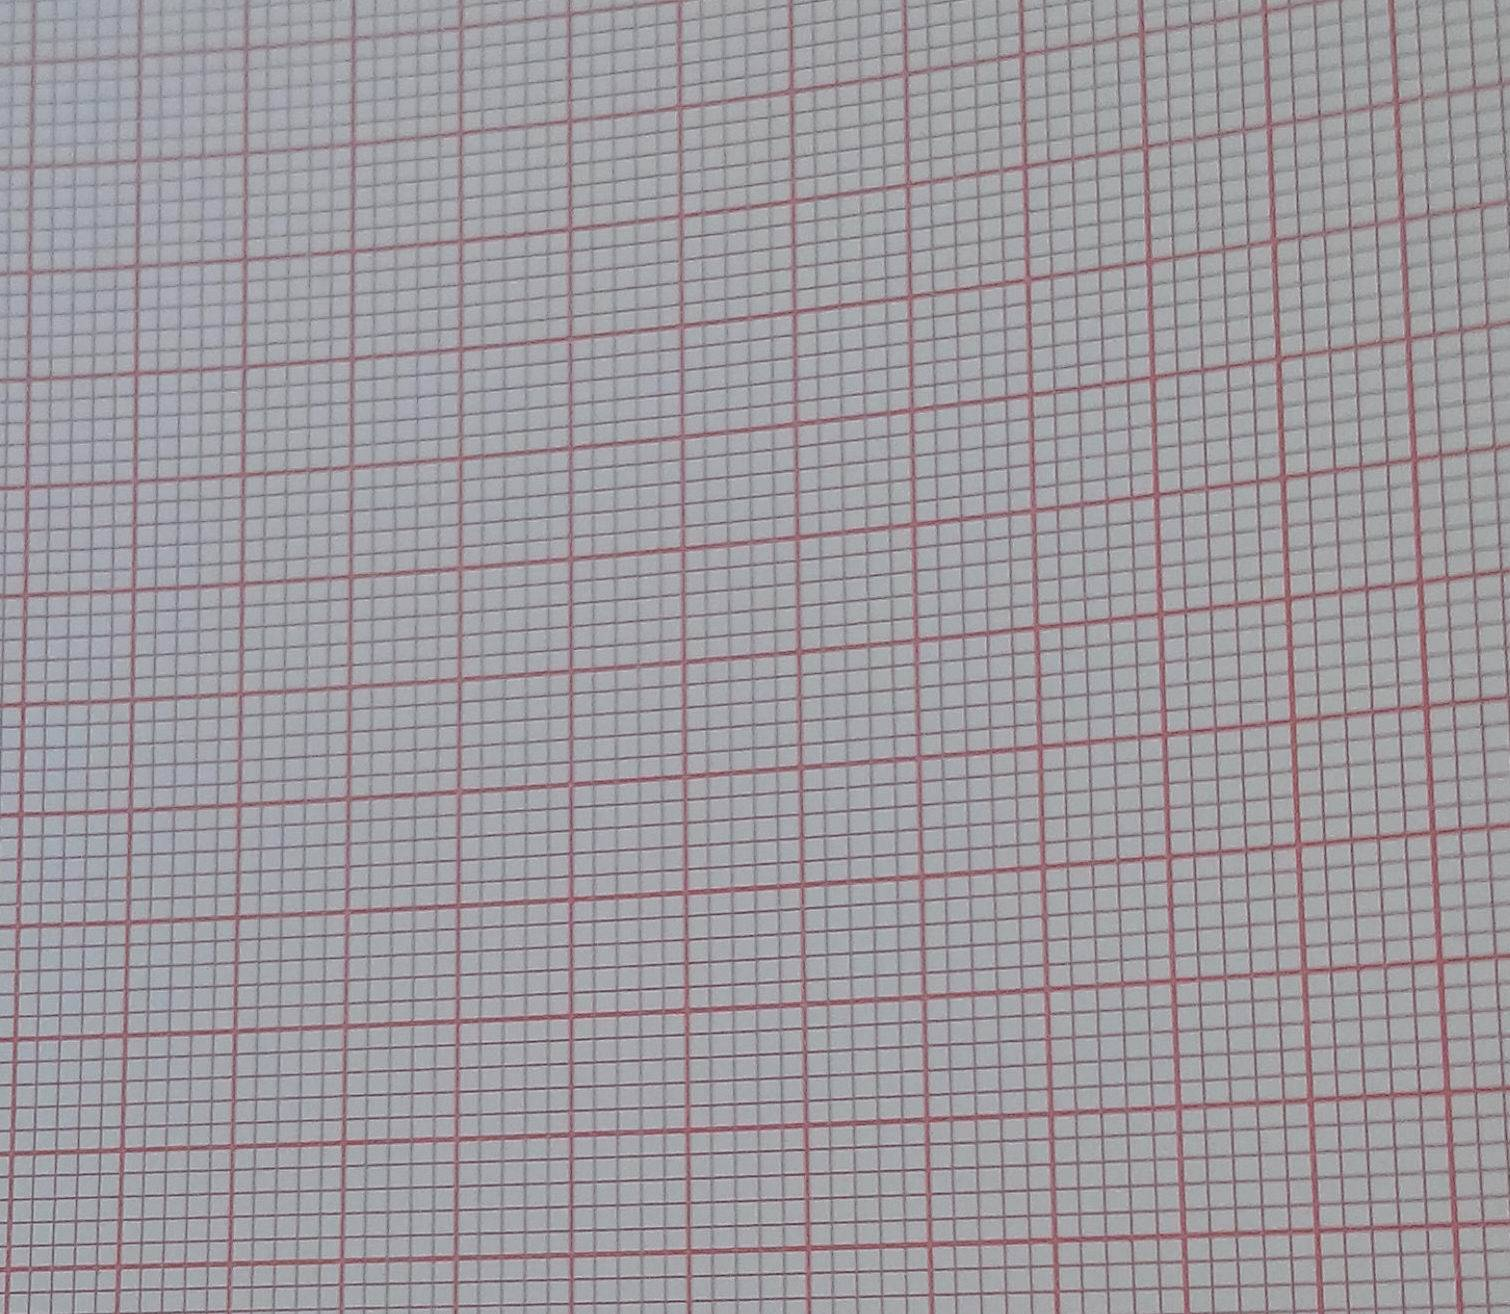 Twelve-Conduct Electrocardiograph Paper-210mmX300mm-200P